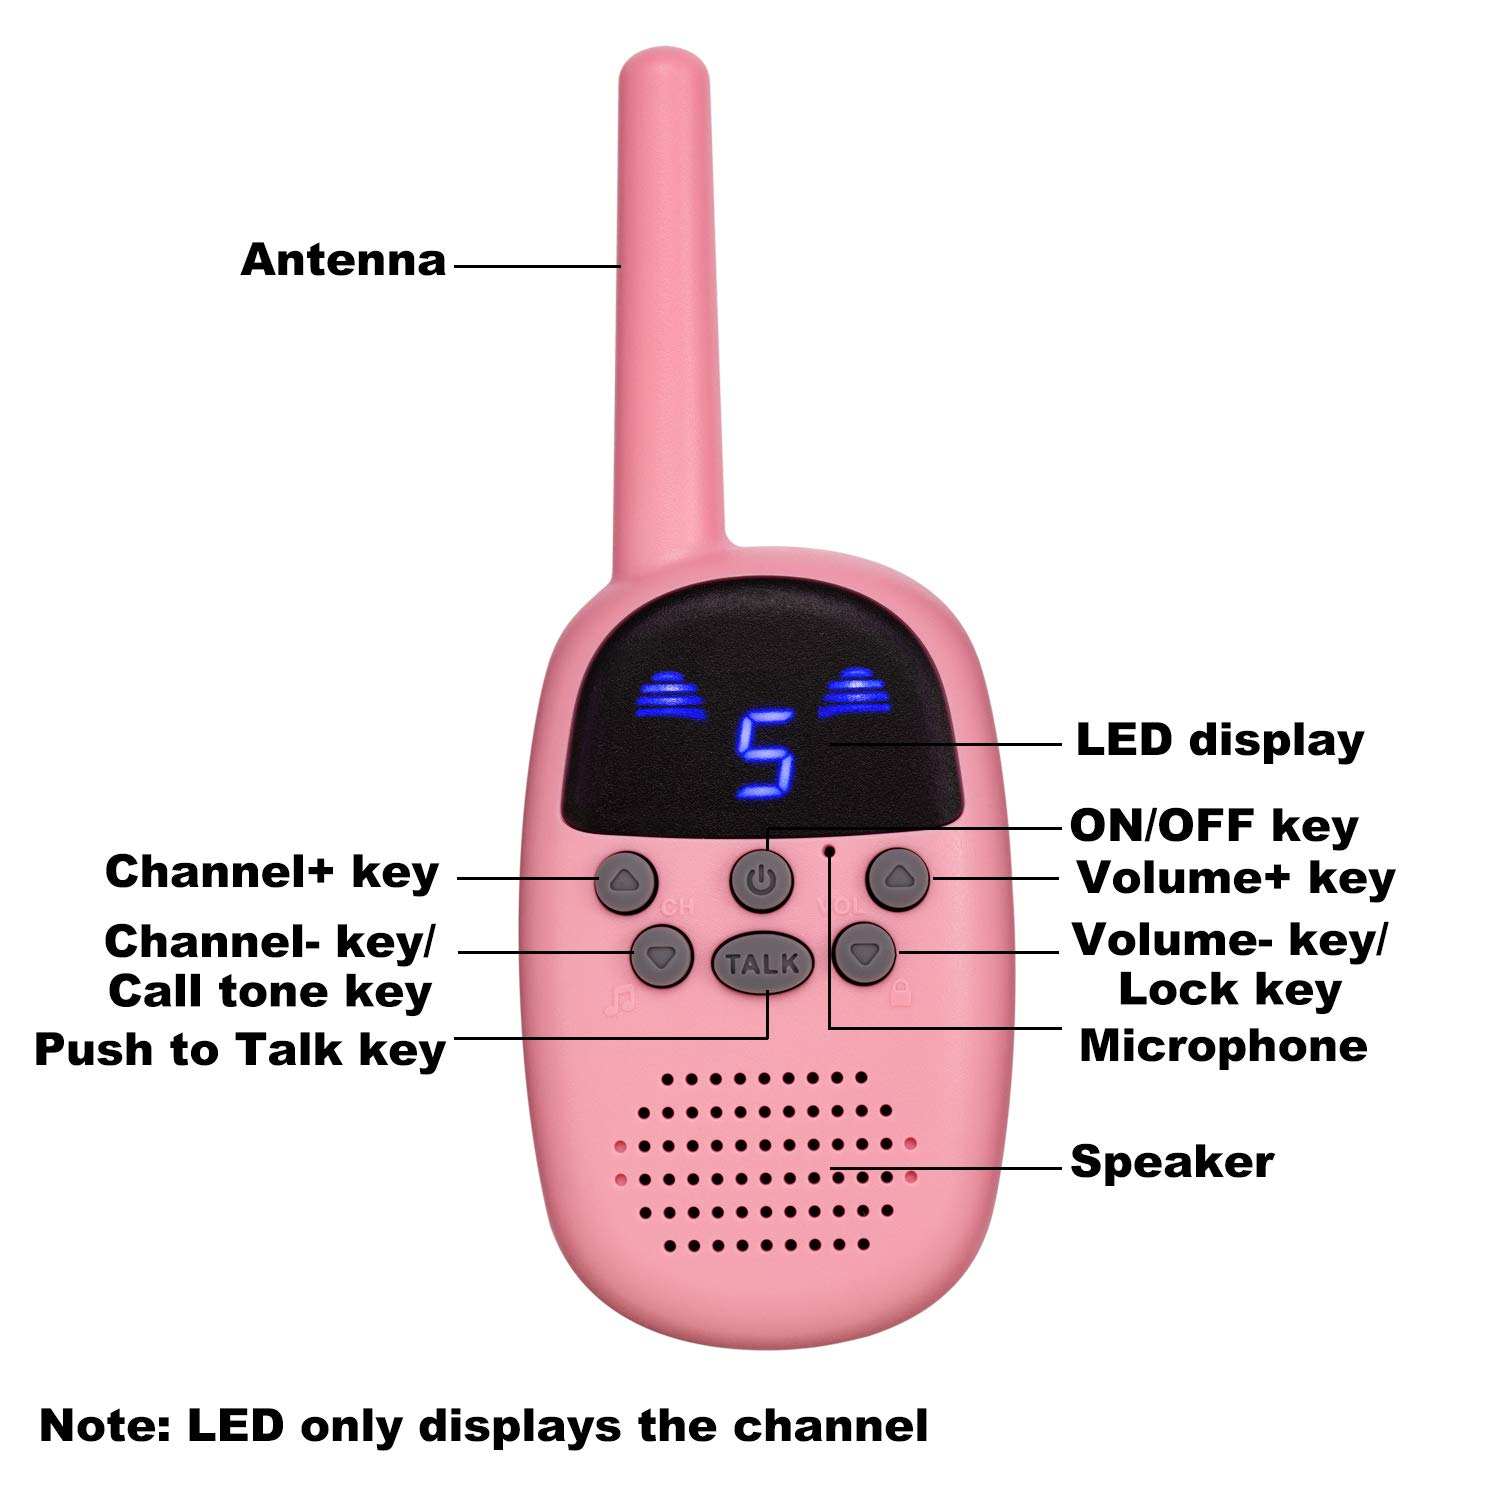 omzer Toy Walkie Talkies for Kids with 9 Channels FRS/GMRS Handheld Interphone Long Range for Adventures, Camping, Hiking, Great Creative Gifts for 4-7 Years Old Girls Boys(Pink/Blue, 1 Pair) by omzer (Image #2)